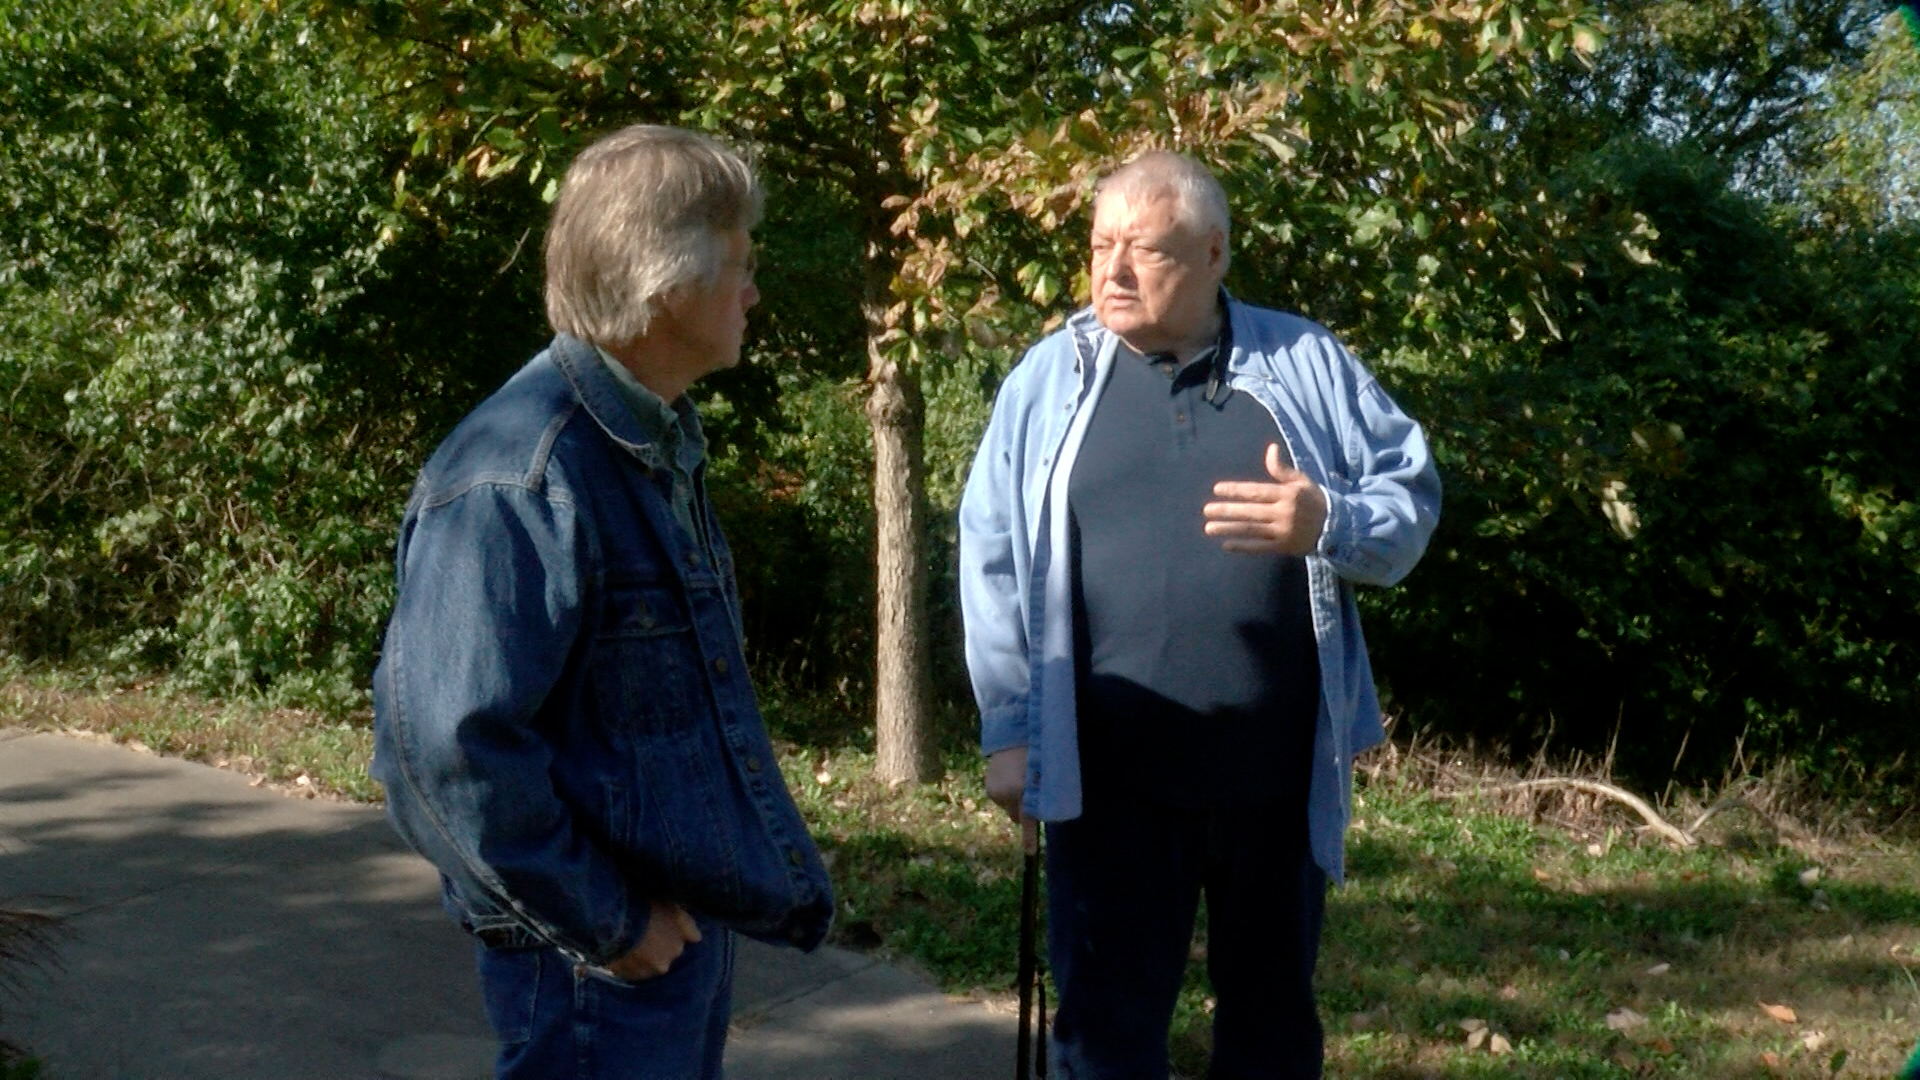 Writer Rex Buchanan (left) speaks with Larry Short, president of the Santa Fe Trail Association. (Photo by Dave Kendall)